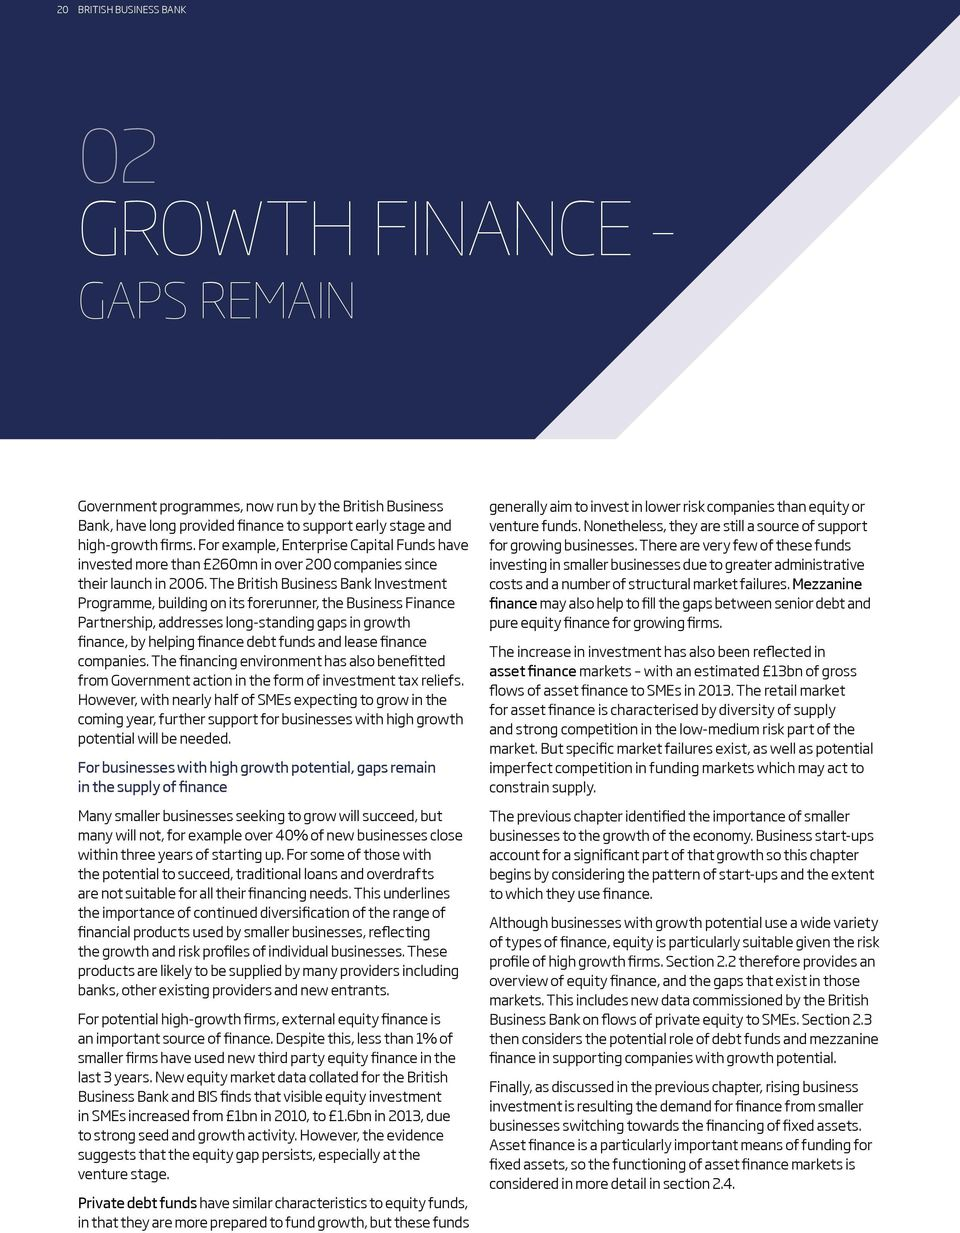 The British Business Bank Investment Programme, building on its forerunner, the Business Finance Partnership, addresses long-standing gaps in growth finance, by helping finance debt funds and lease